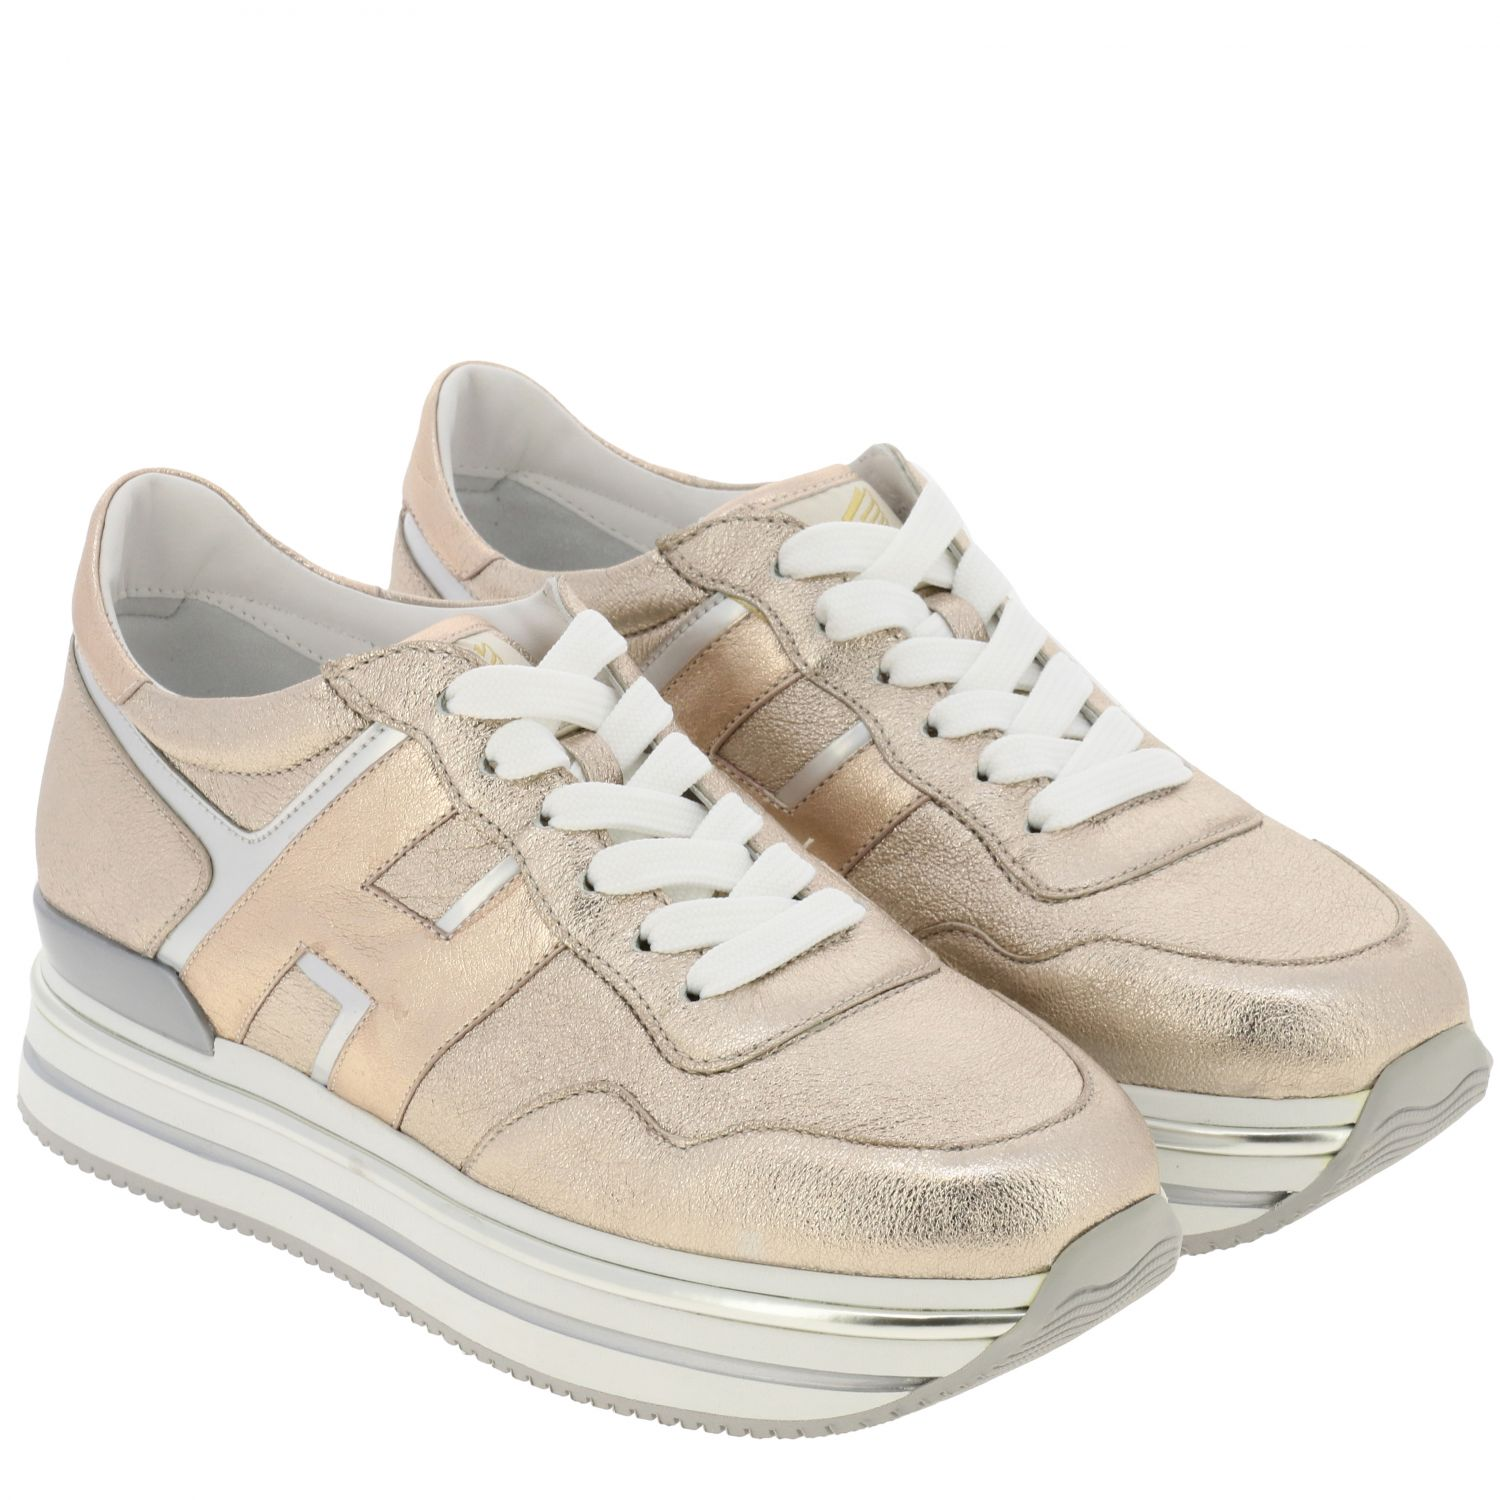 Hogan sneakers in laminated and mirrored leather with sole 222 pink 2